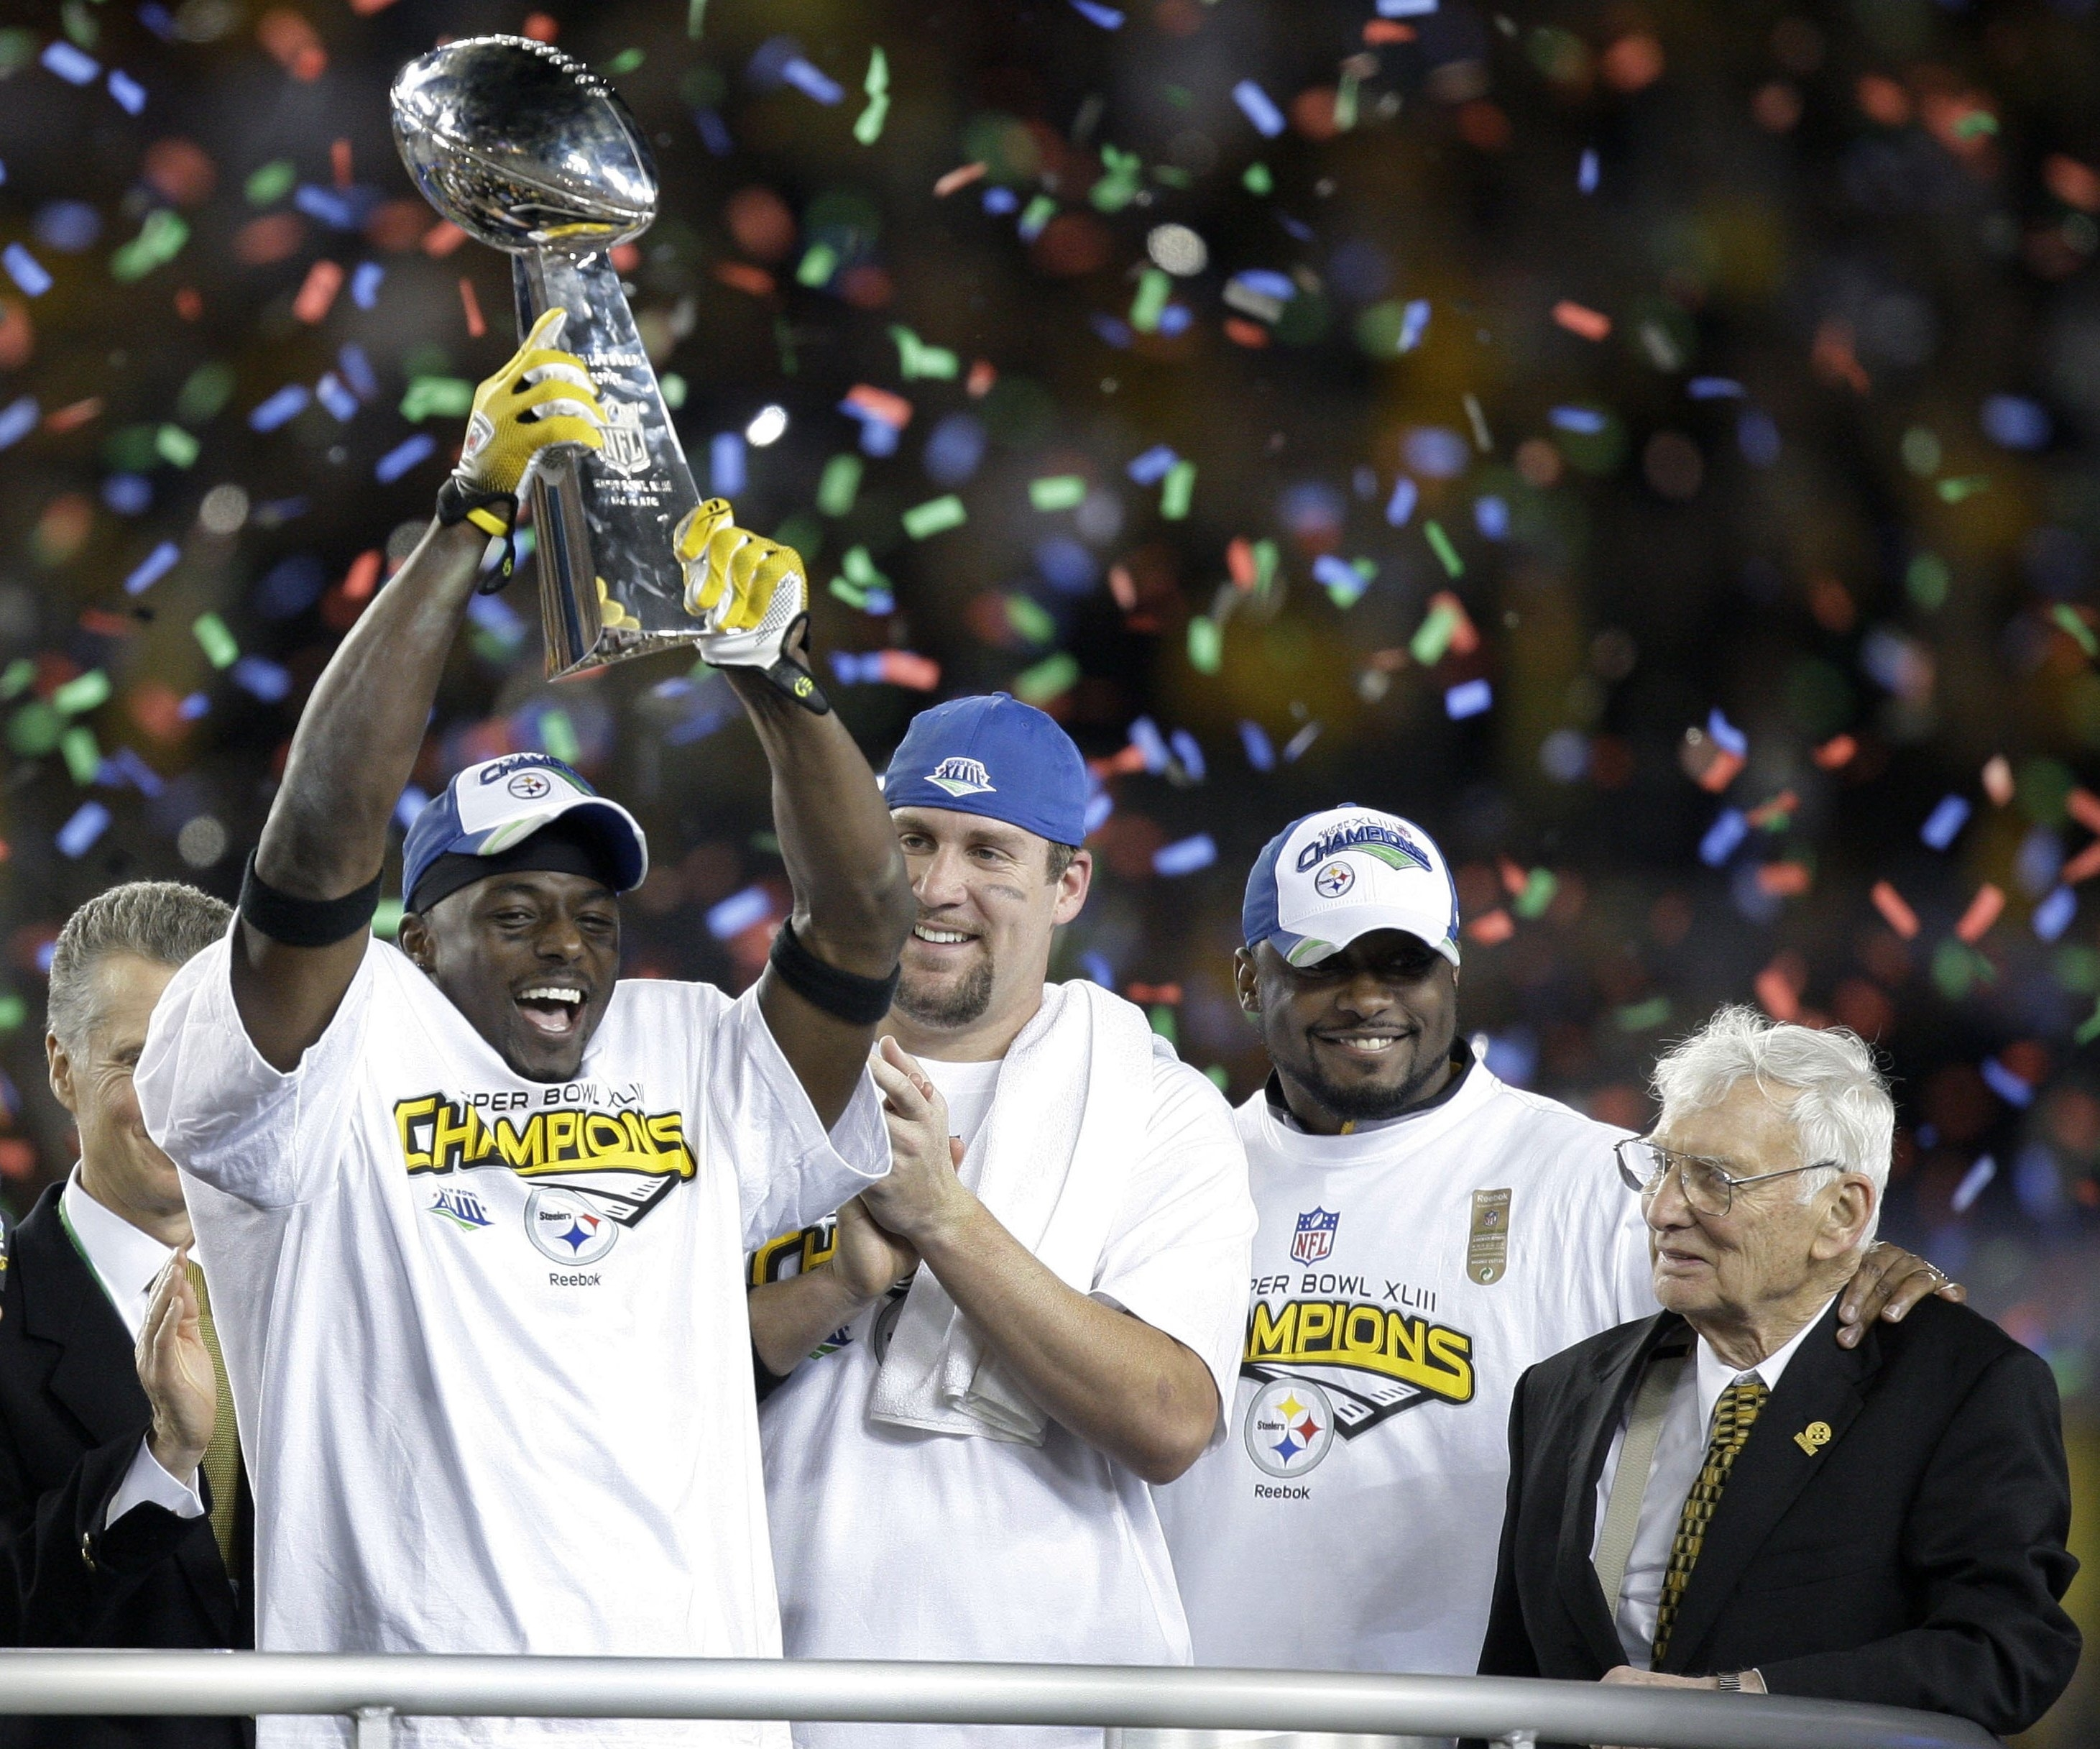 Big Ben A Worthy Hero   The Spokesman-Review intended for Ben Roethlisberger Super Bowl